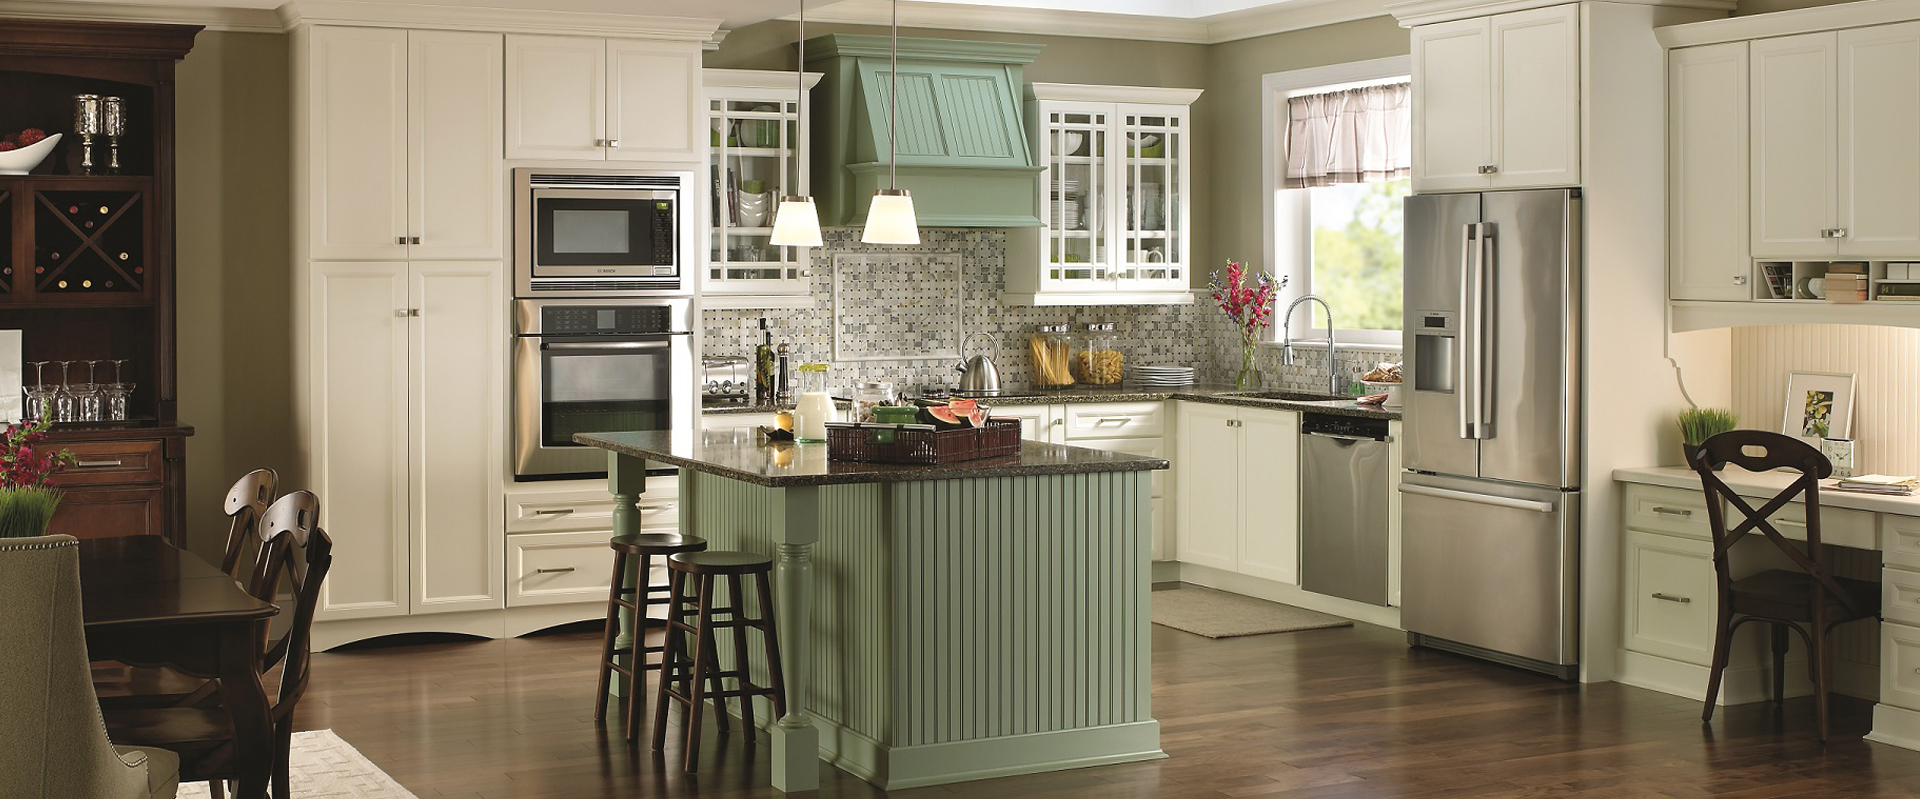 kitchen-remodel-west-chester-pa